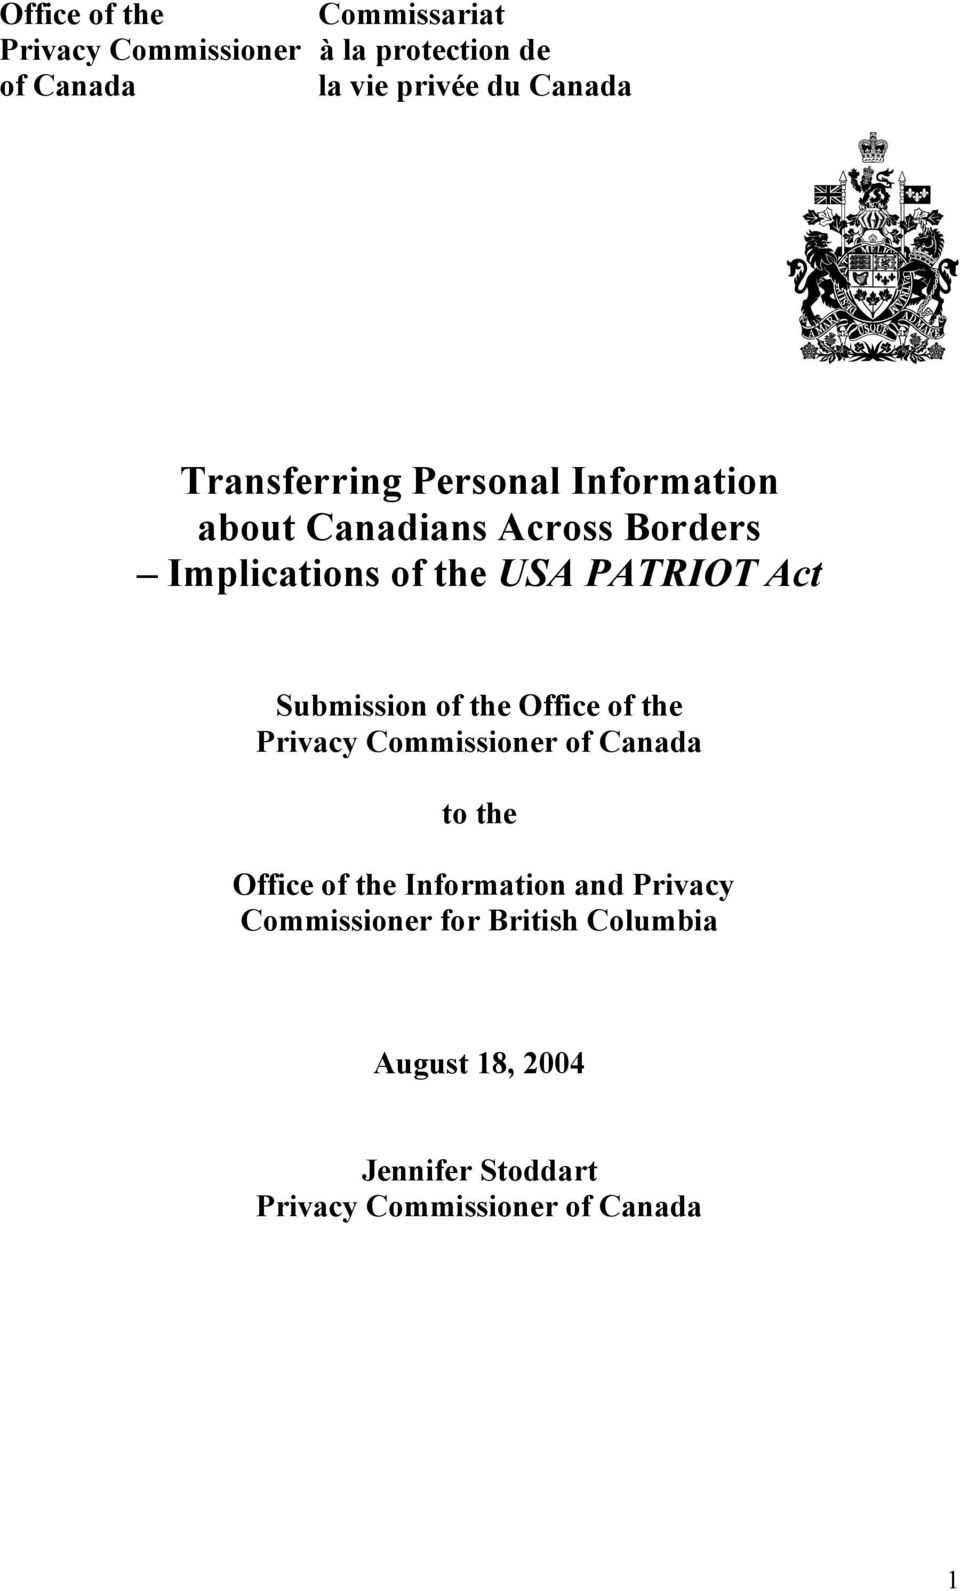 Submission of the Office of the Privacy Commissioner of Canada to the Office of the Information and